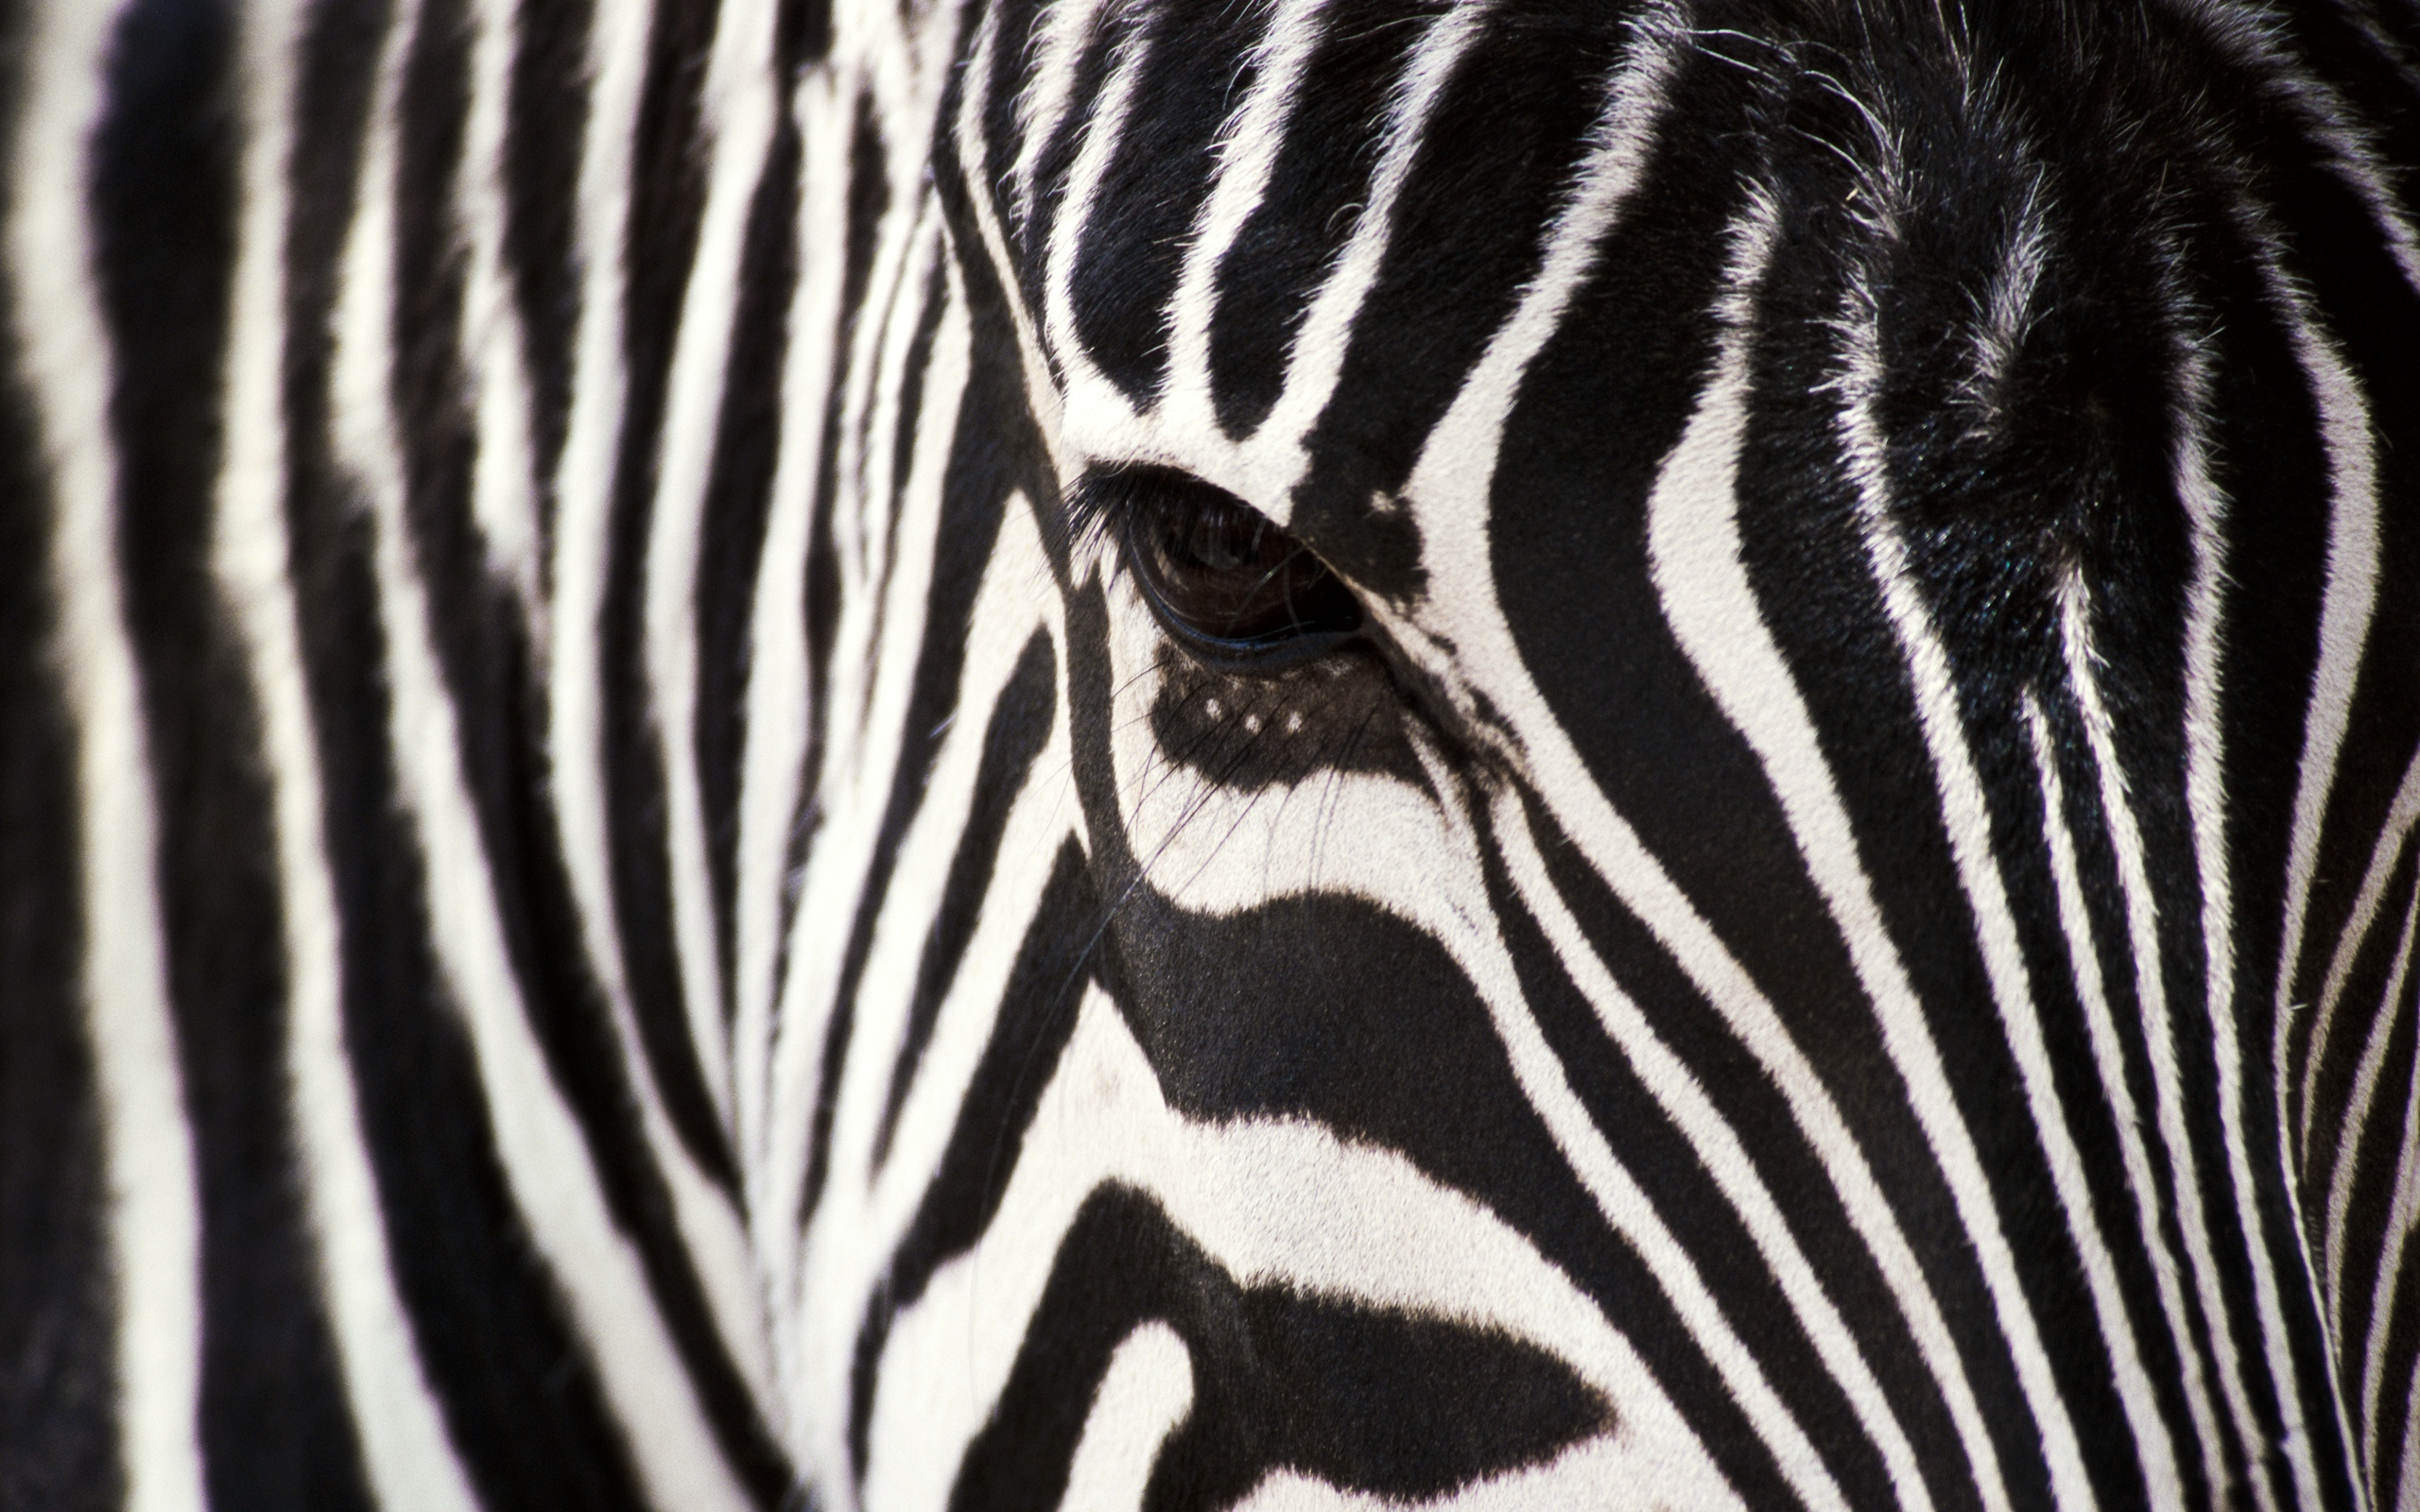 Zebra close up wallpaper 2560x1600 14648 for Miroir noir download